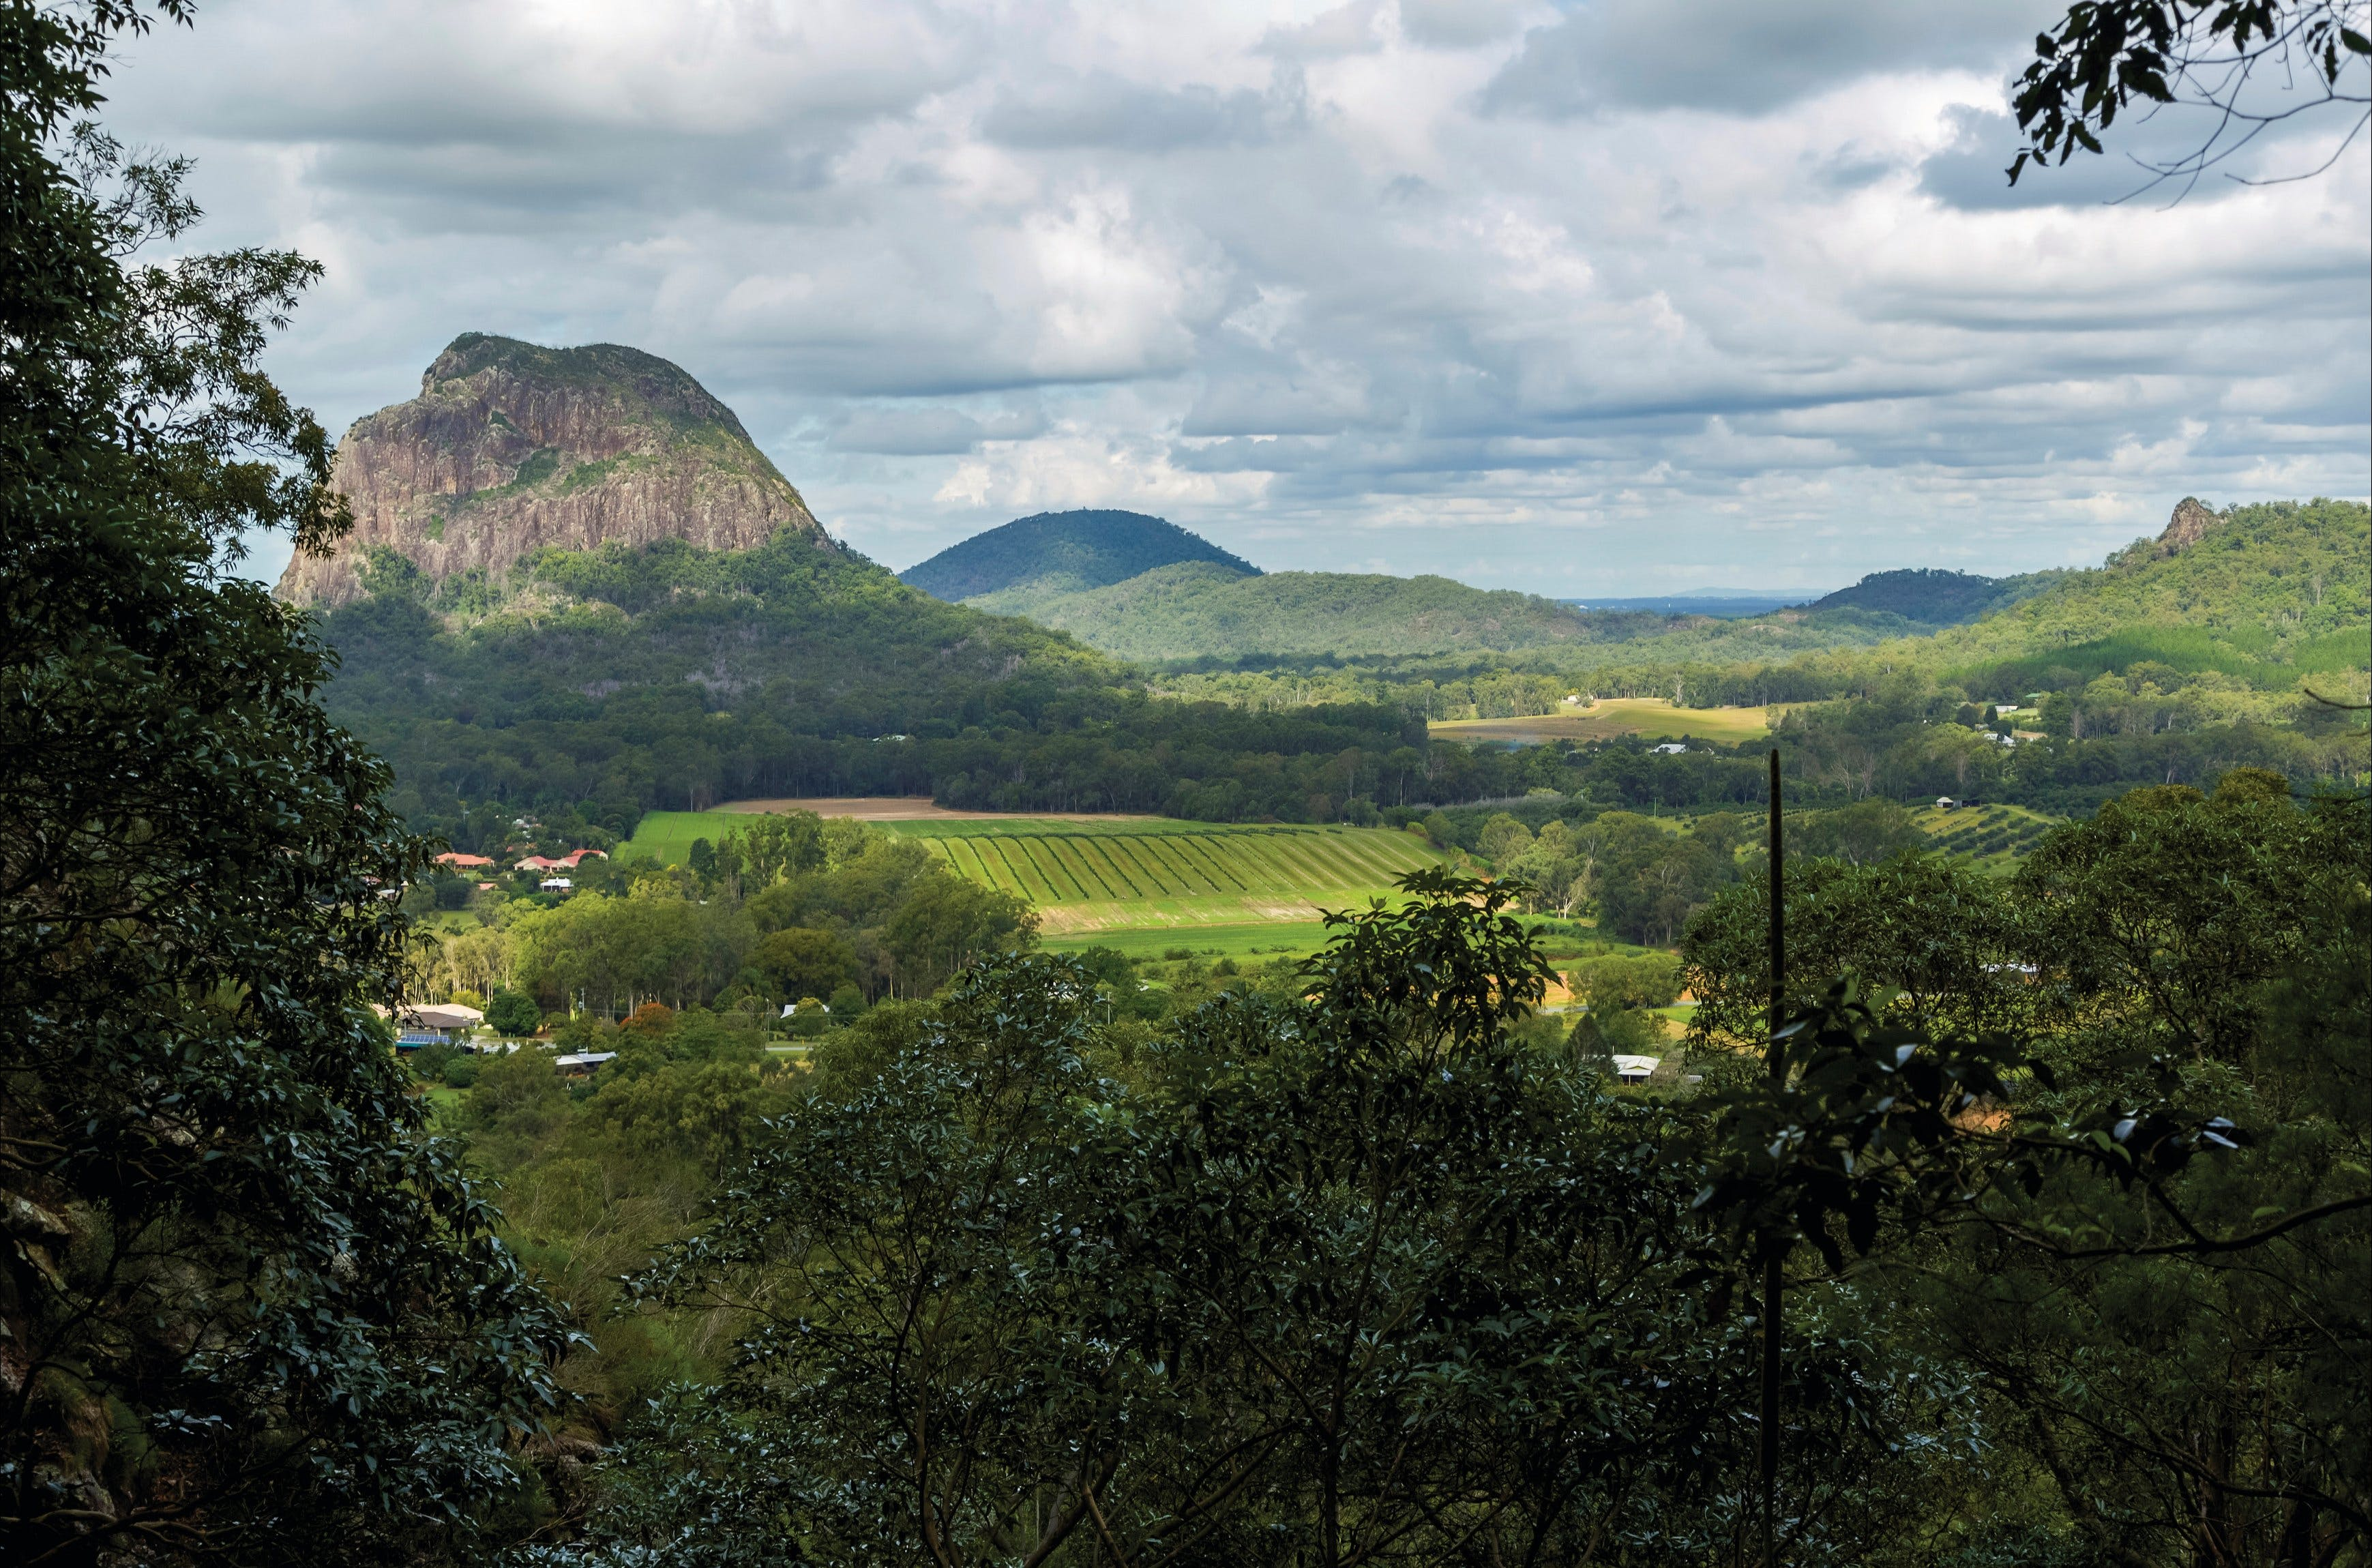 Mount Ngungun summit walking track, Glass House Mountains National Park Logo and Images